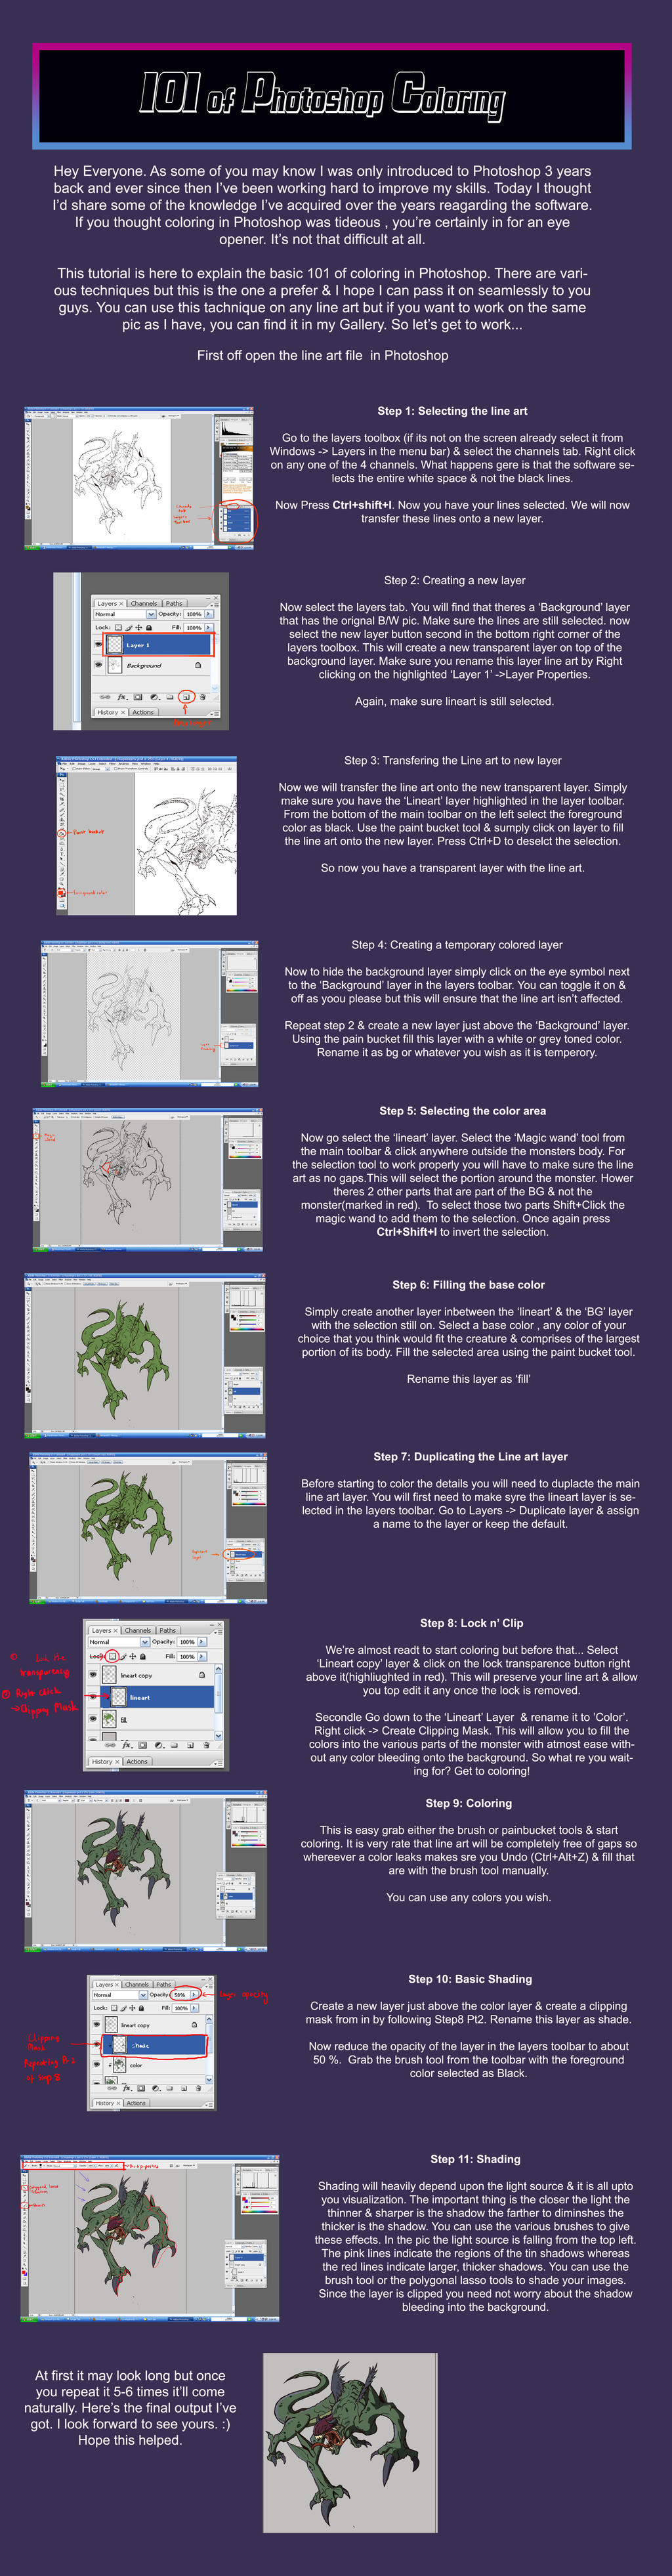 Photoshop coloring tutorial by jazylh on deviantart photoshop coloring tutorial by jazylh photoshop coloring tutorial by jazylh baditri Choice Image